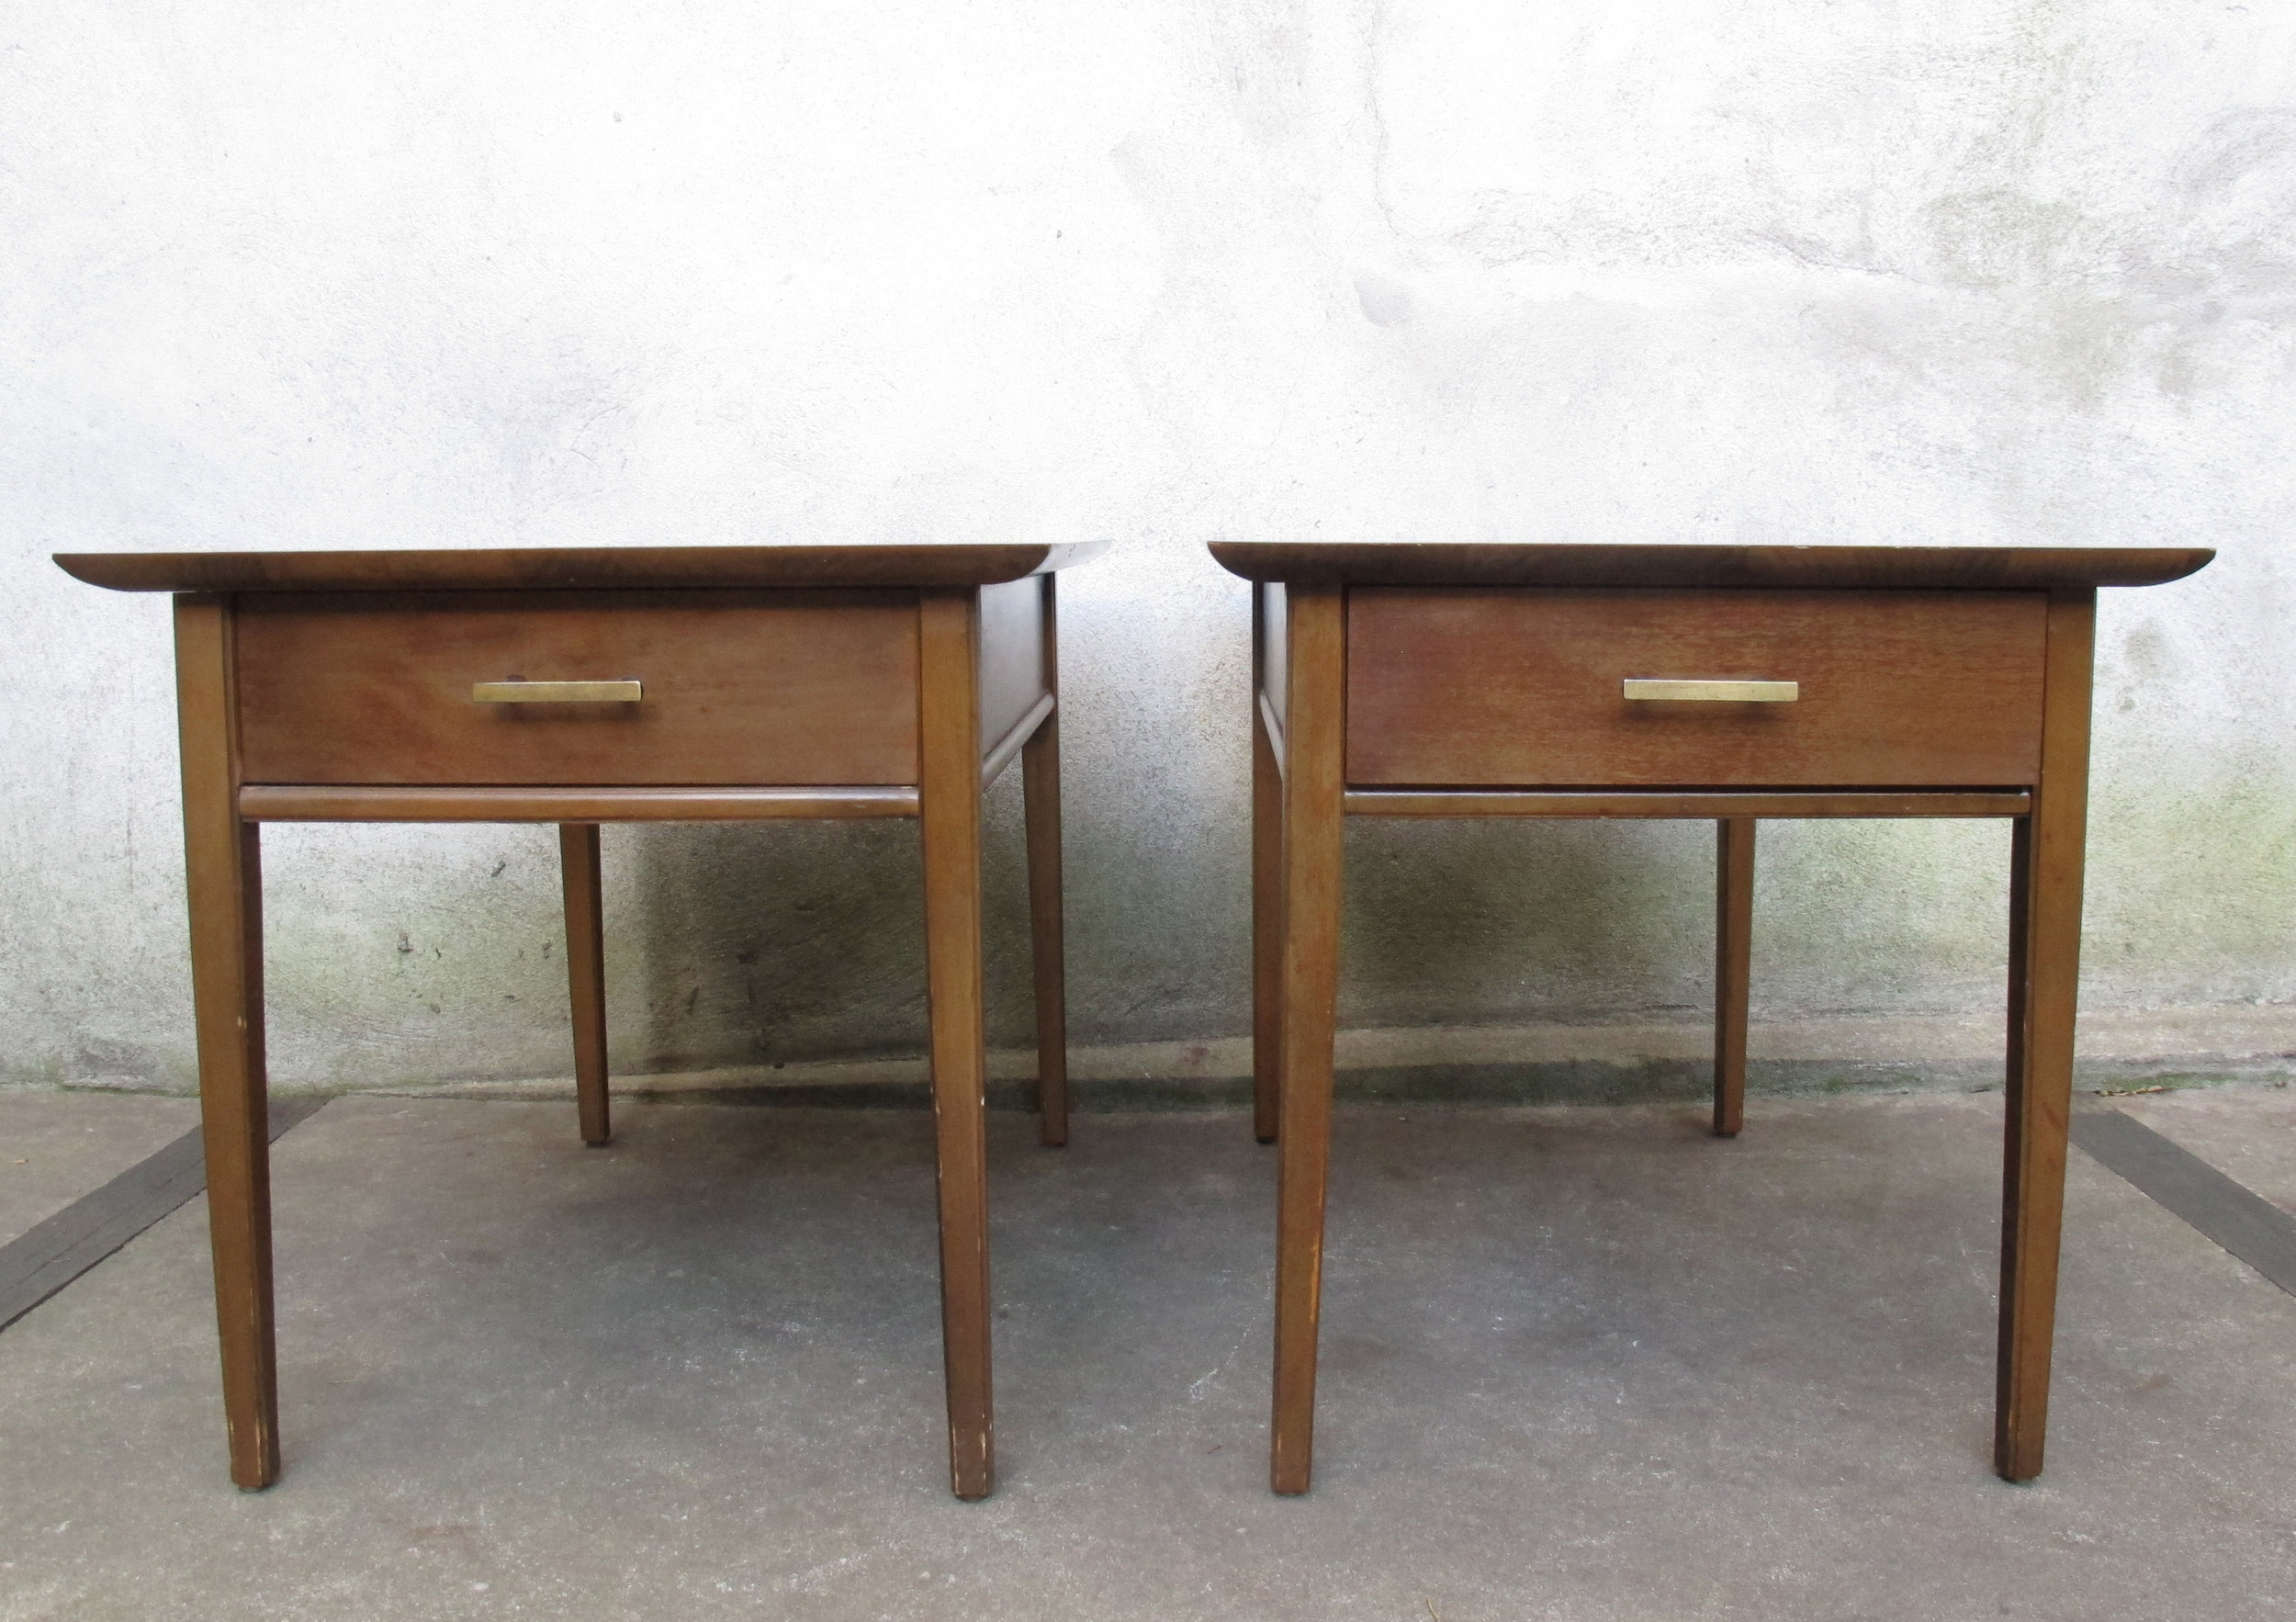 PAIR OF MID CENTURY WALNUT END TABLES BY STANLEY